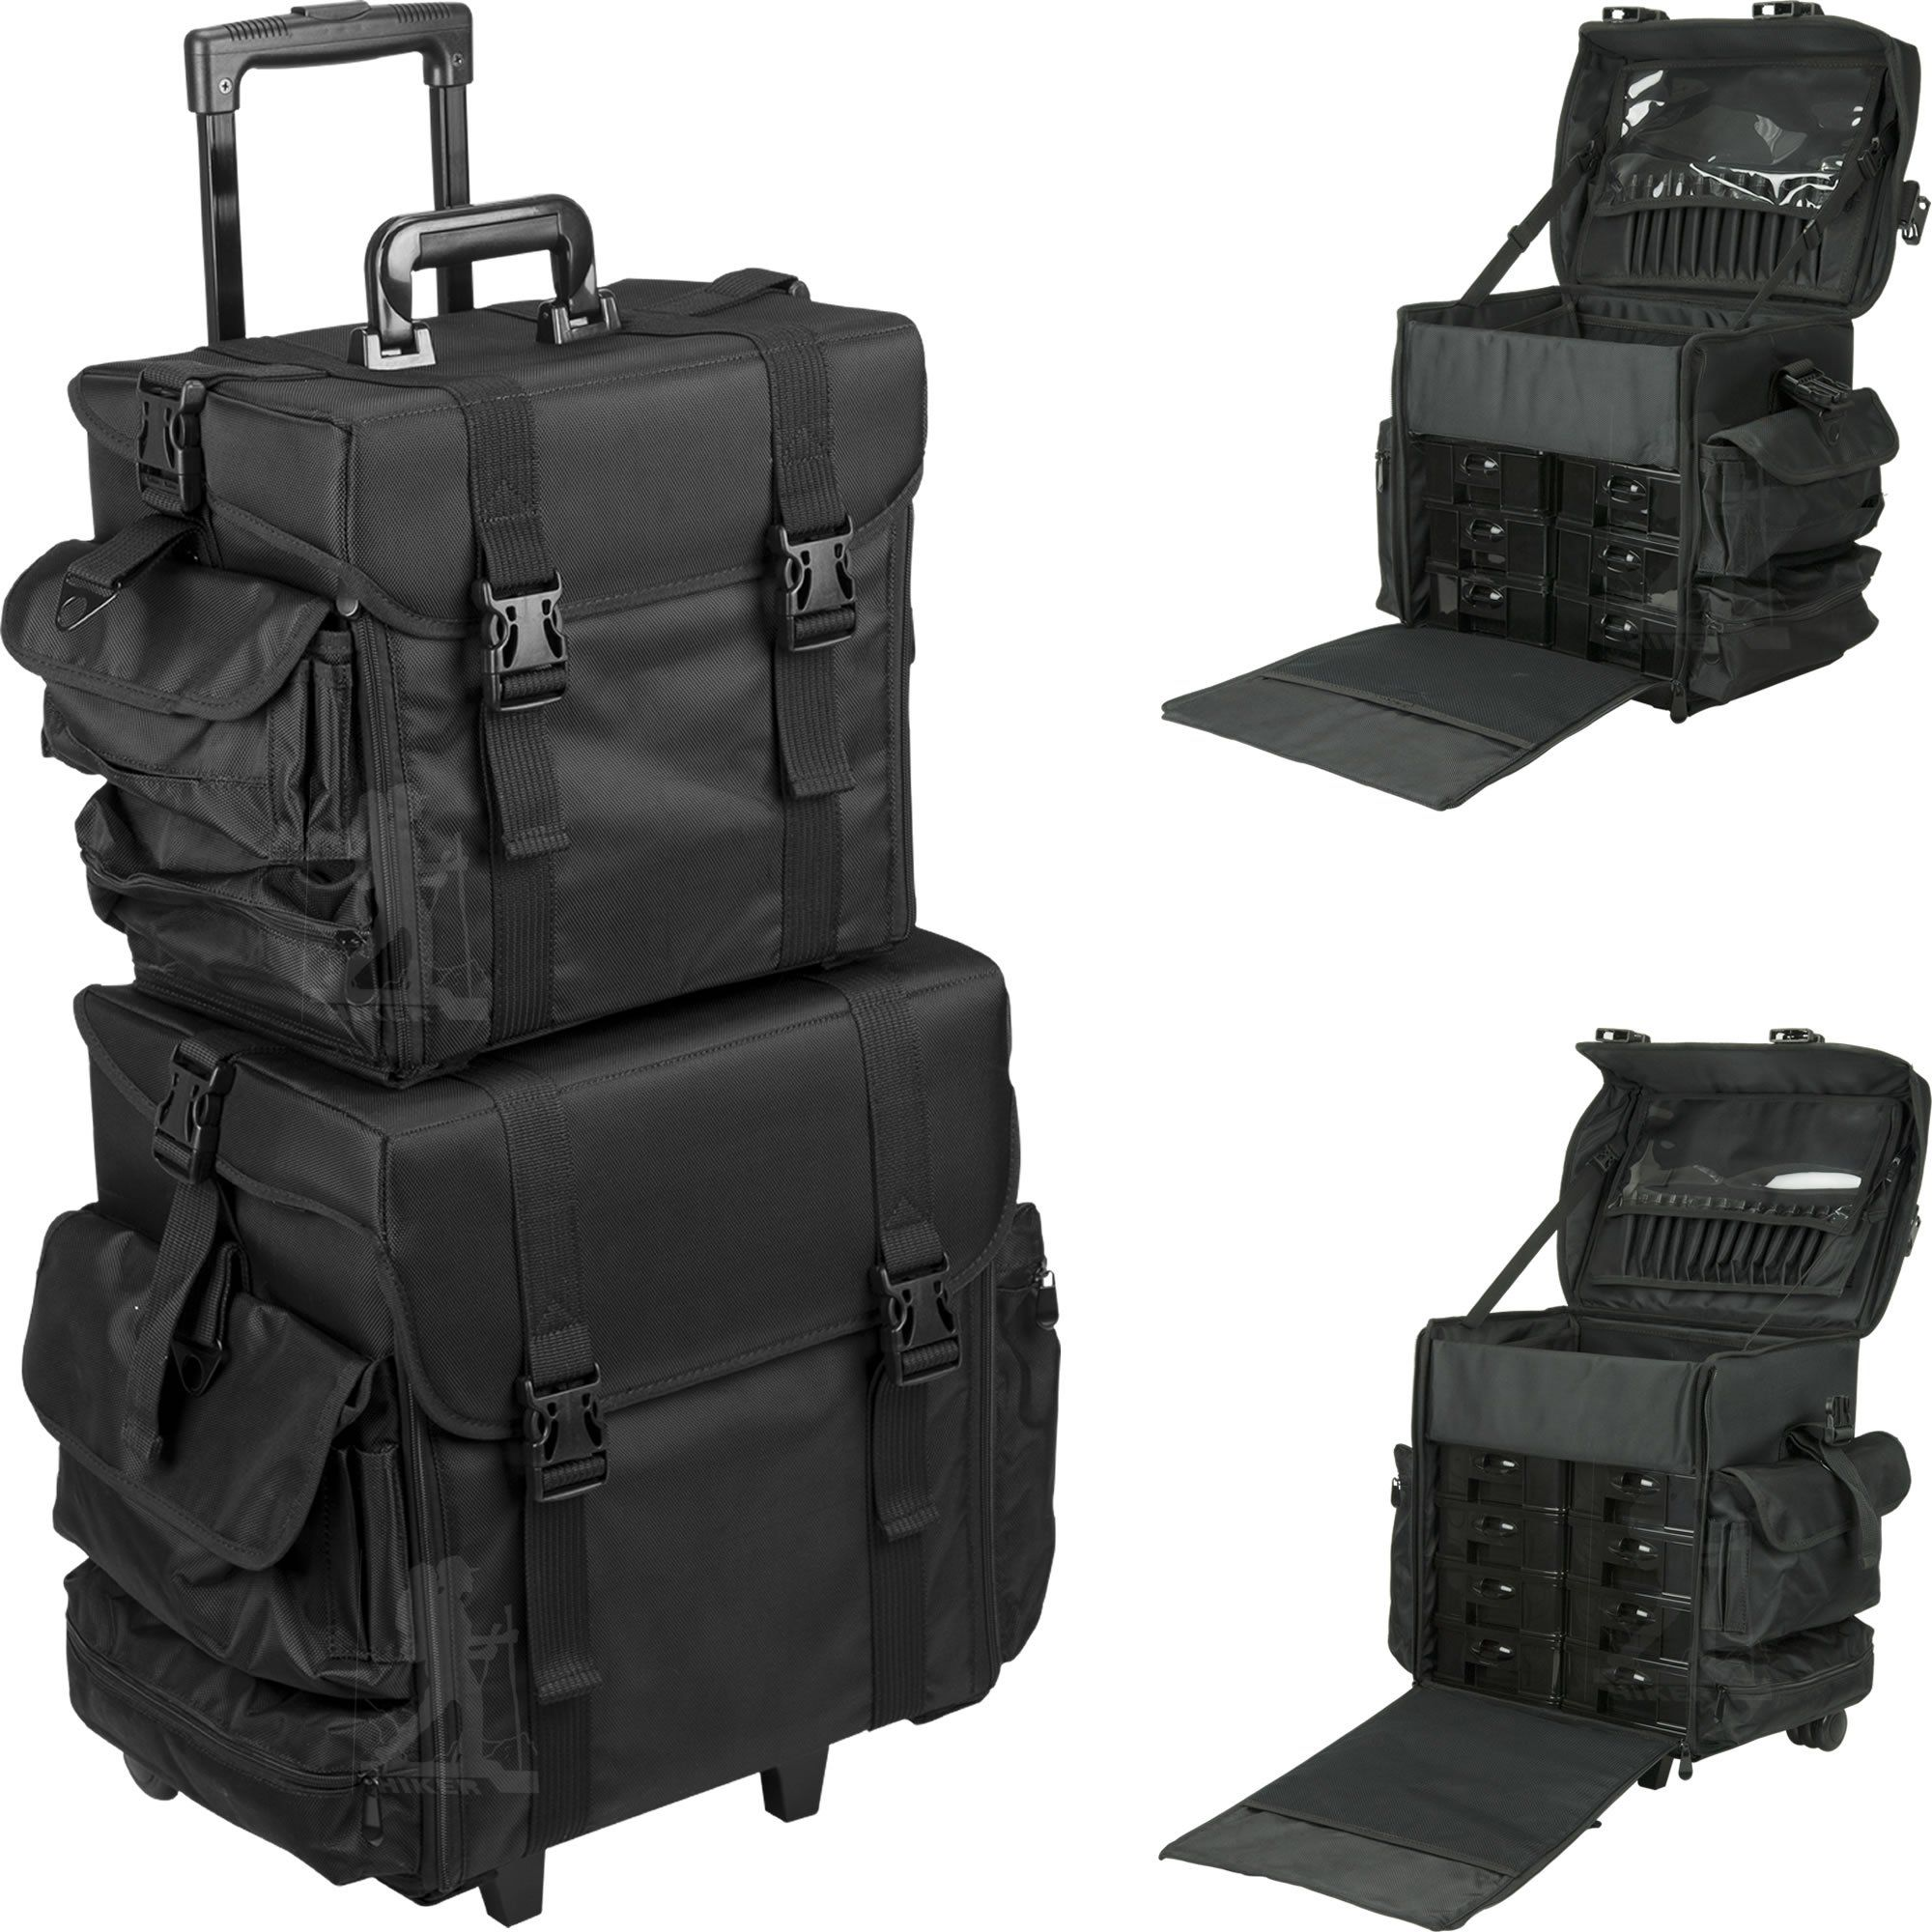 Bianchi Professional SoftSided Rolling Makeup Case by